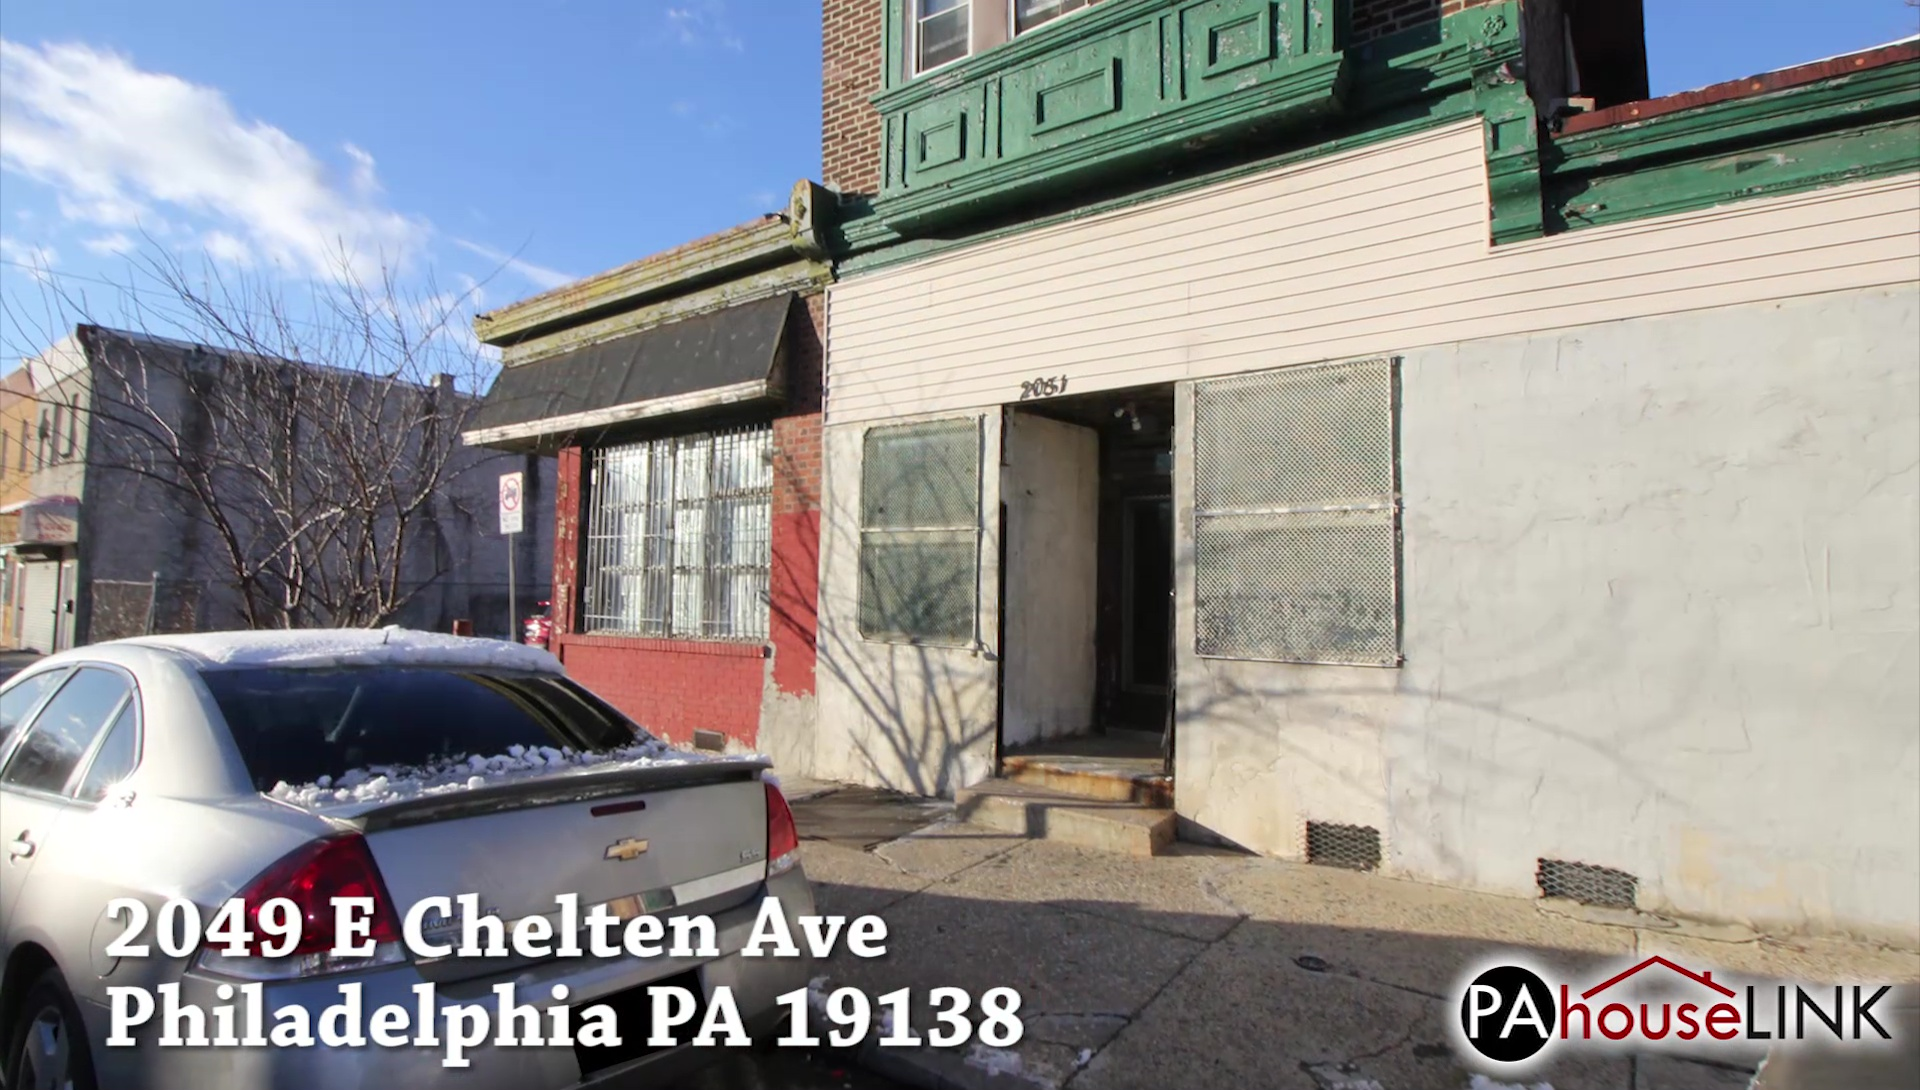 2049 E Chelten Ave Philadelphia PA 19138 | Coming Soon Foreclosure Properties Philadelphia PA 19138